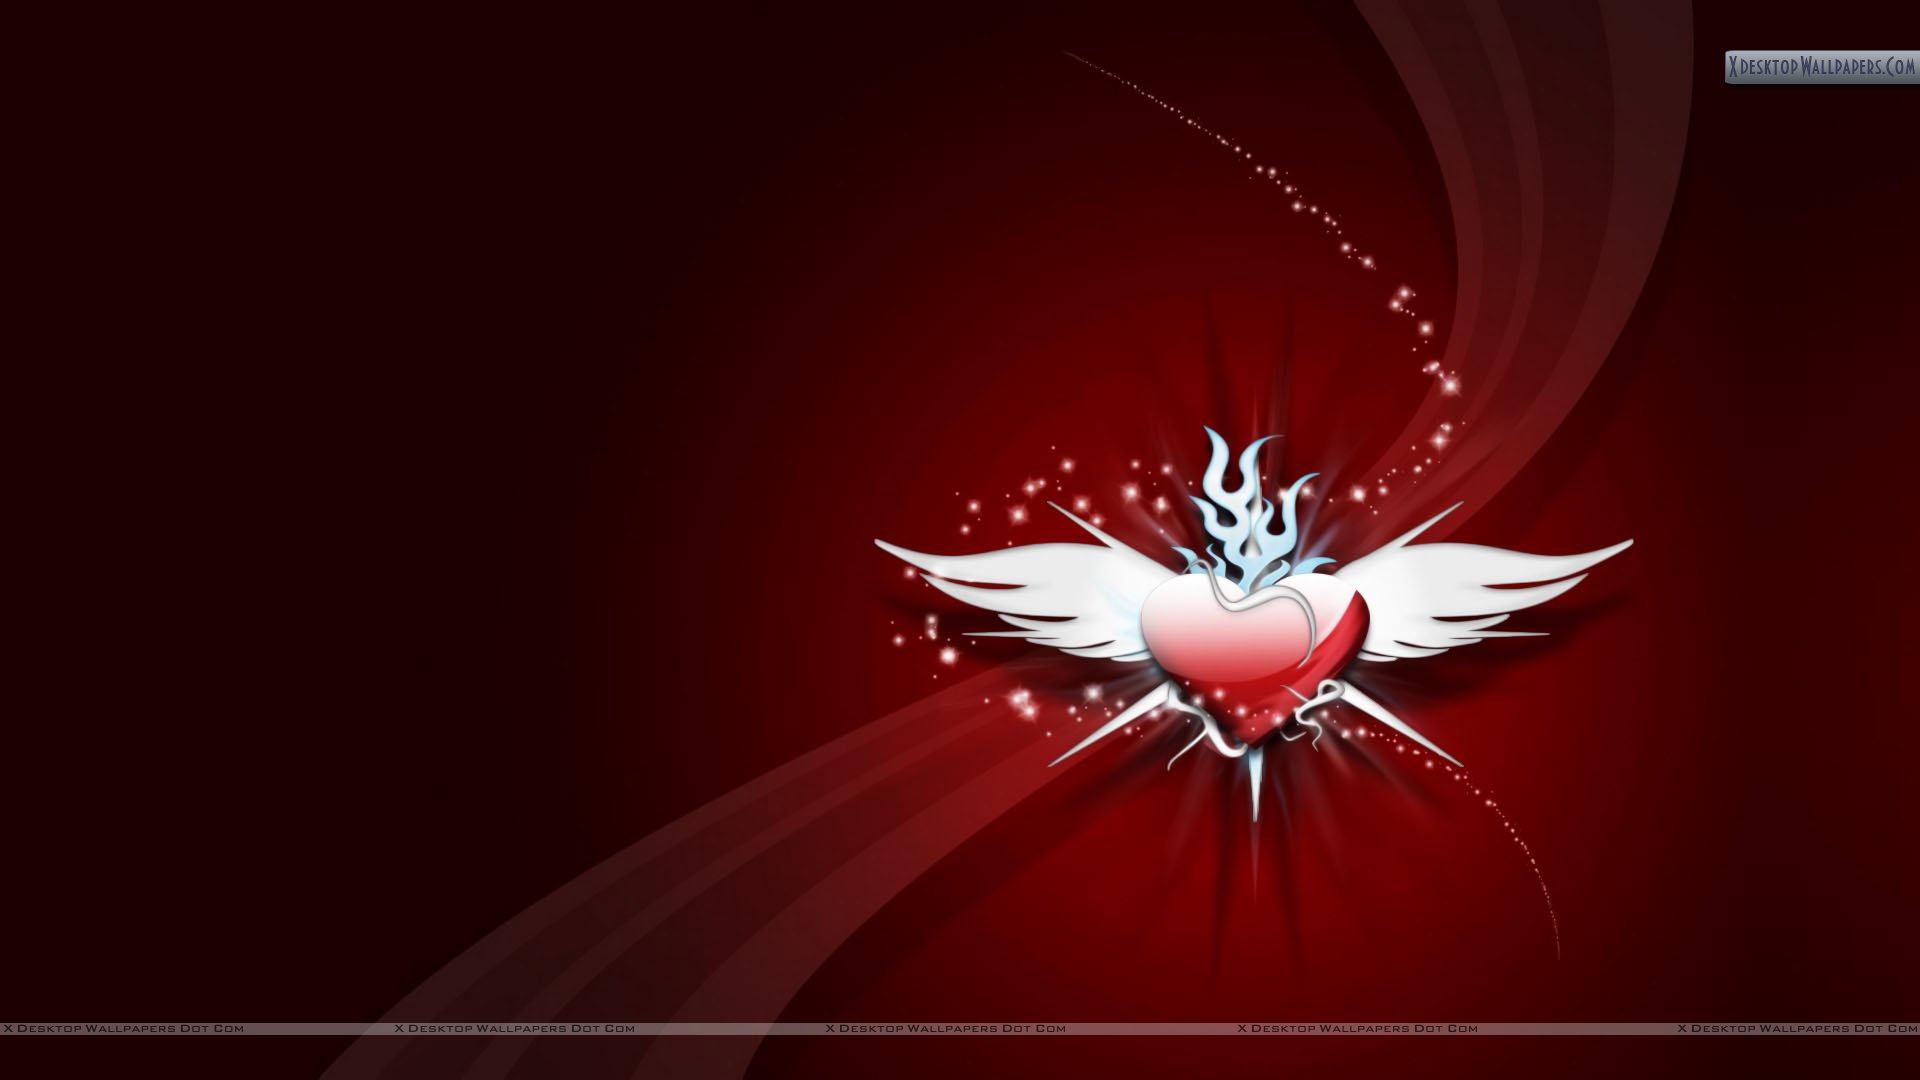 Red Heart With White Wings Cool Red Wallpaper Wallpaper 1920x1080